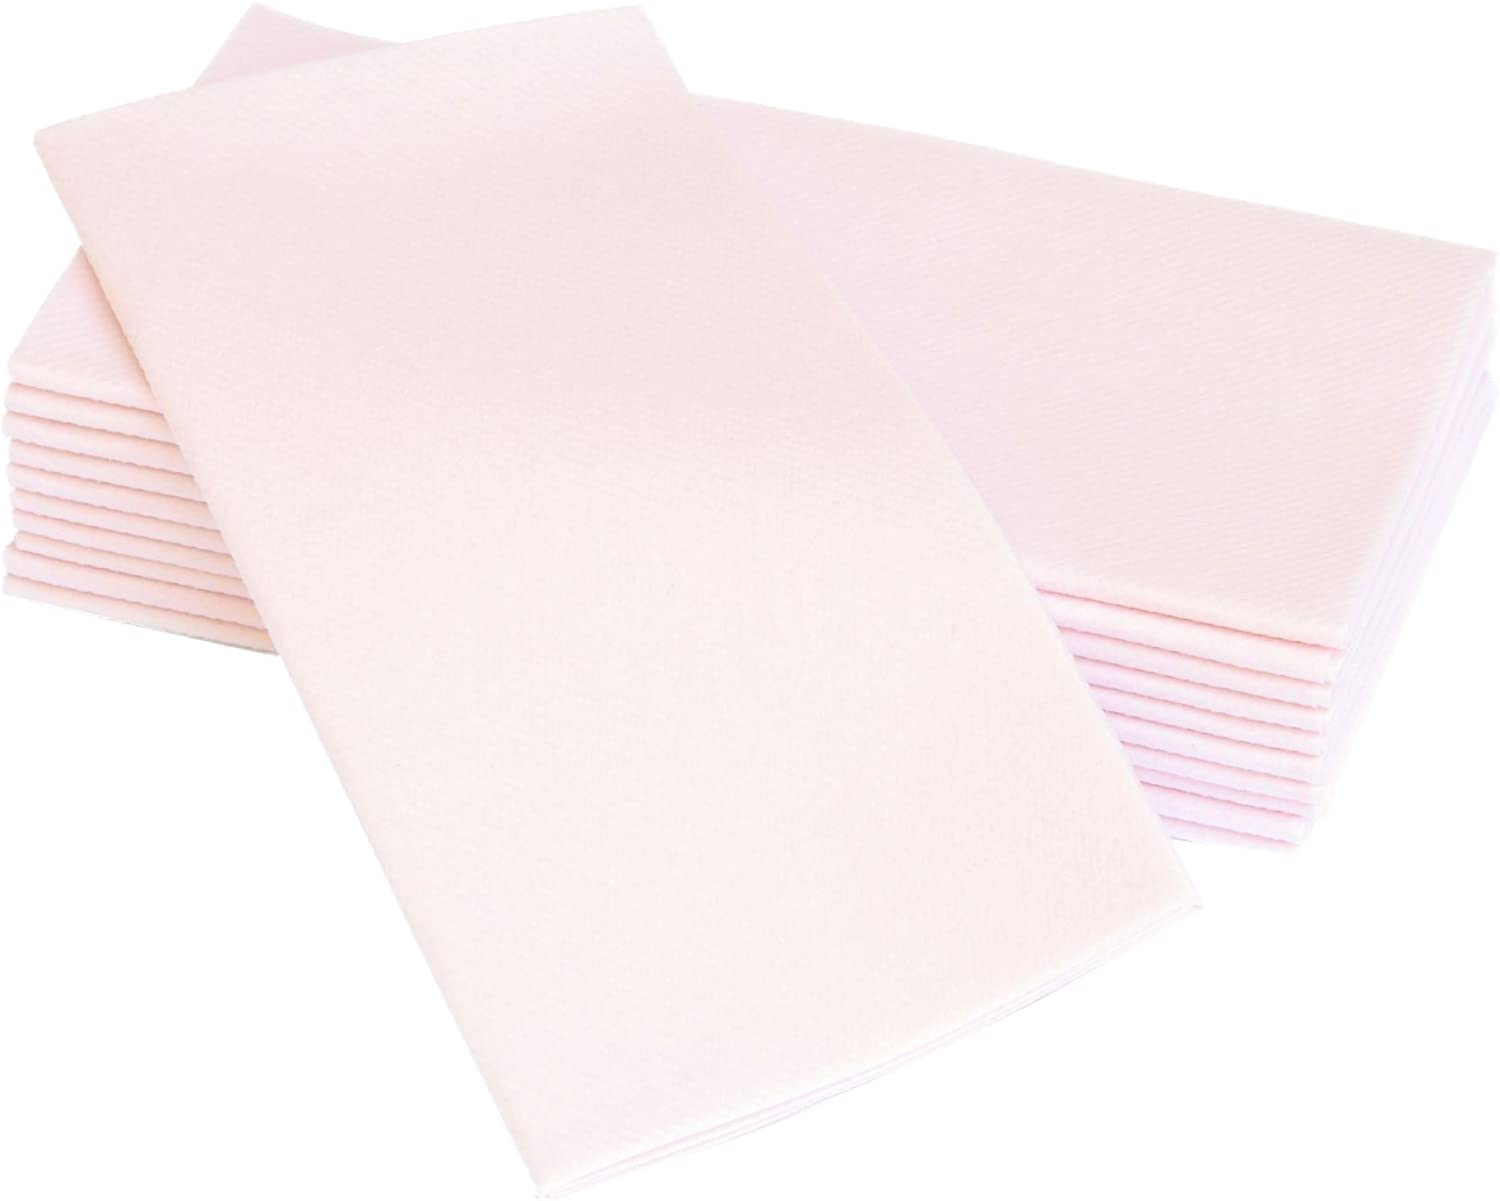 Simulinen Colored Napkins - Decorative Cloth Like & Disposable, Dinner Napkins - Light Pink, Soft, Absorbent & Durable - 16